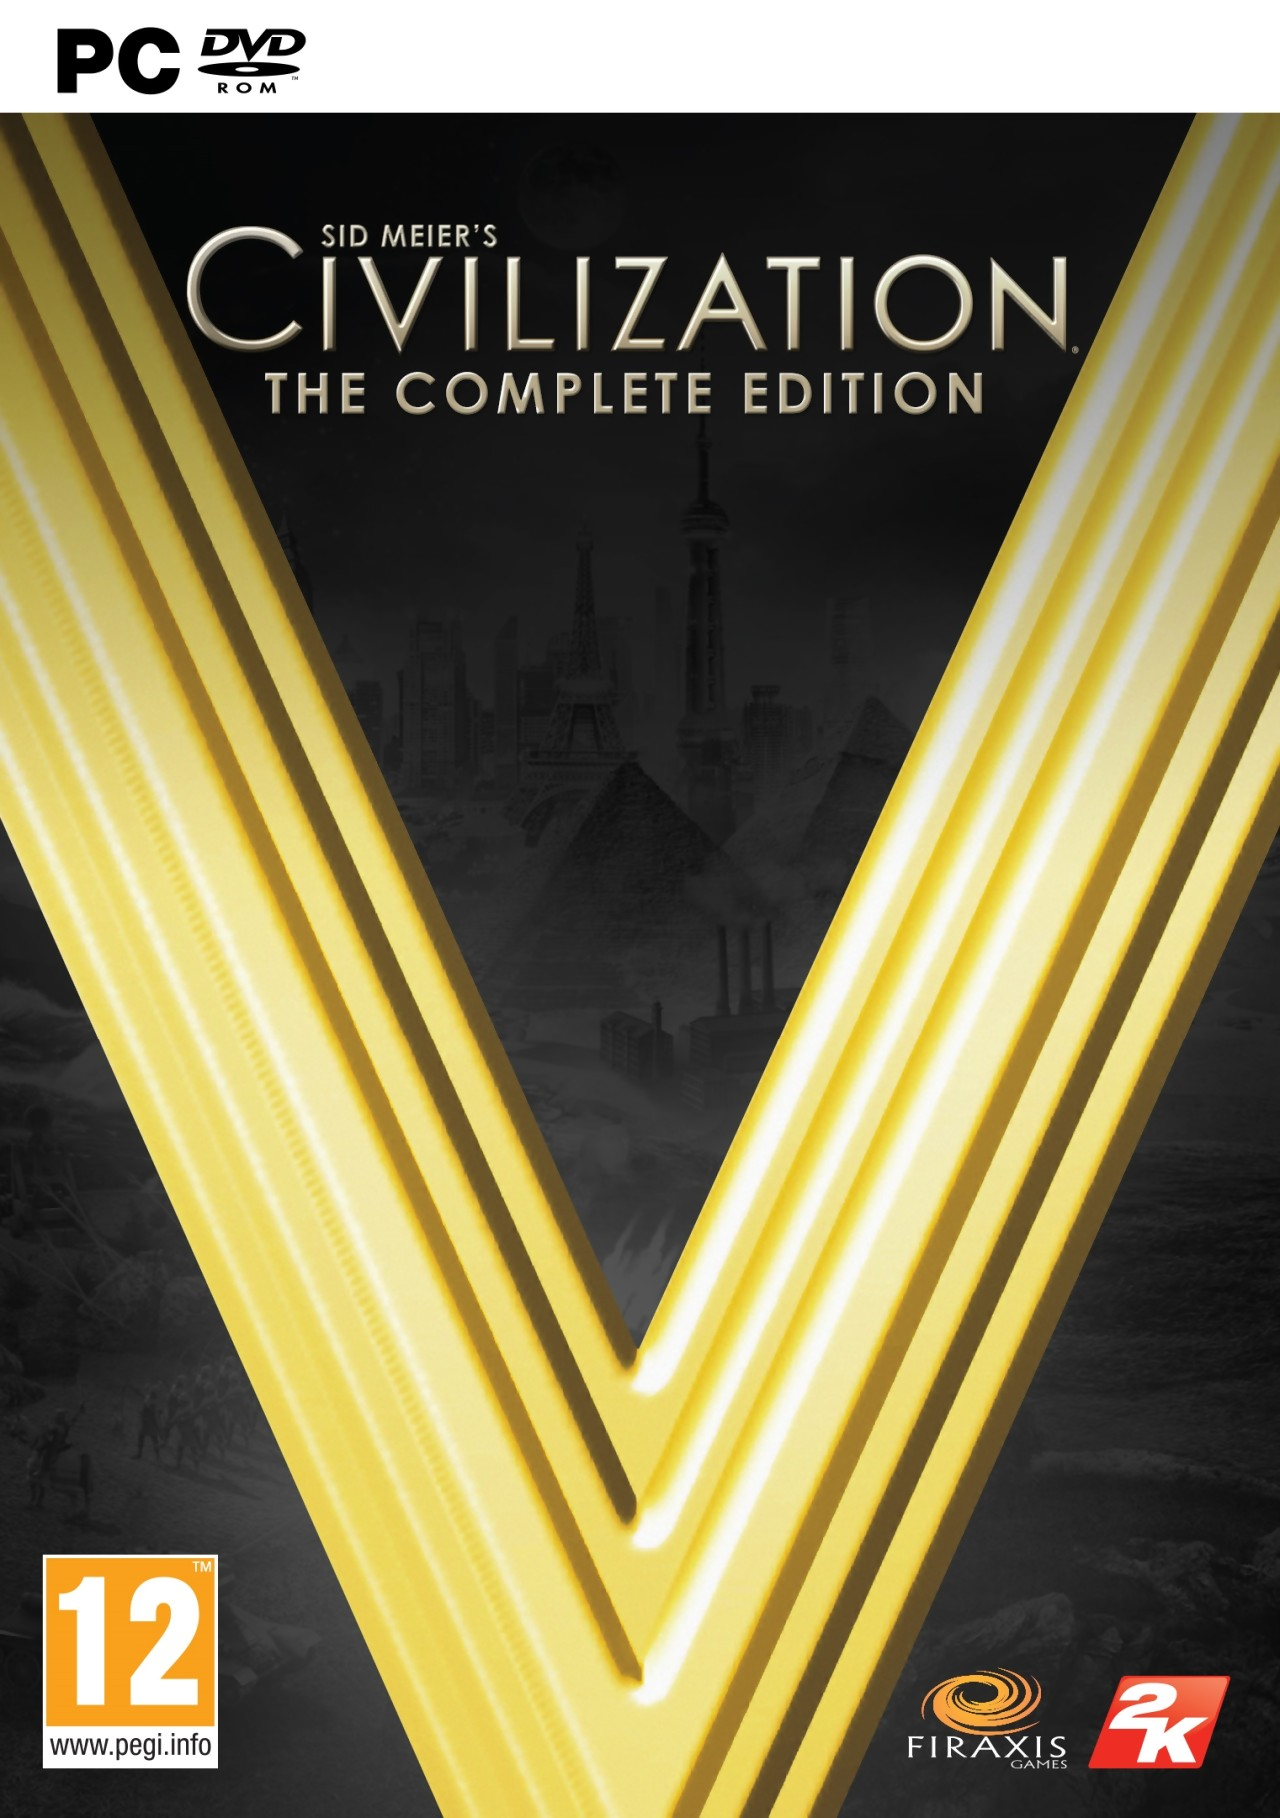 Sid meiers civilization 5 103144 таблица cheat engine - 23bb